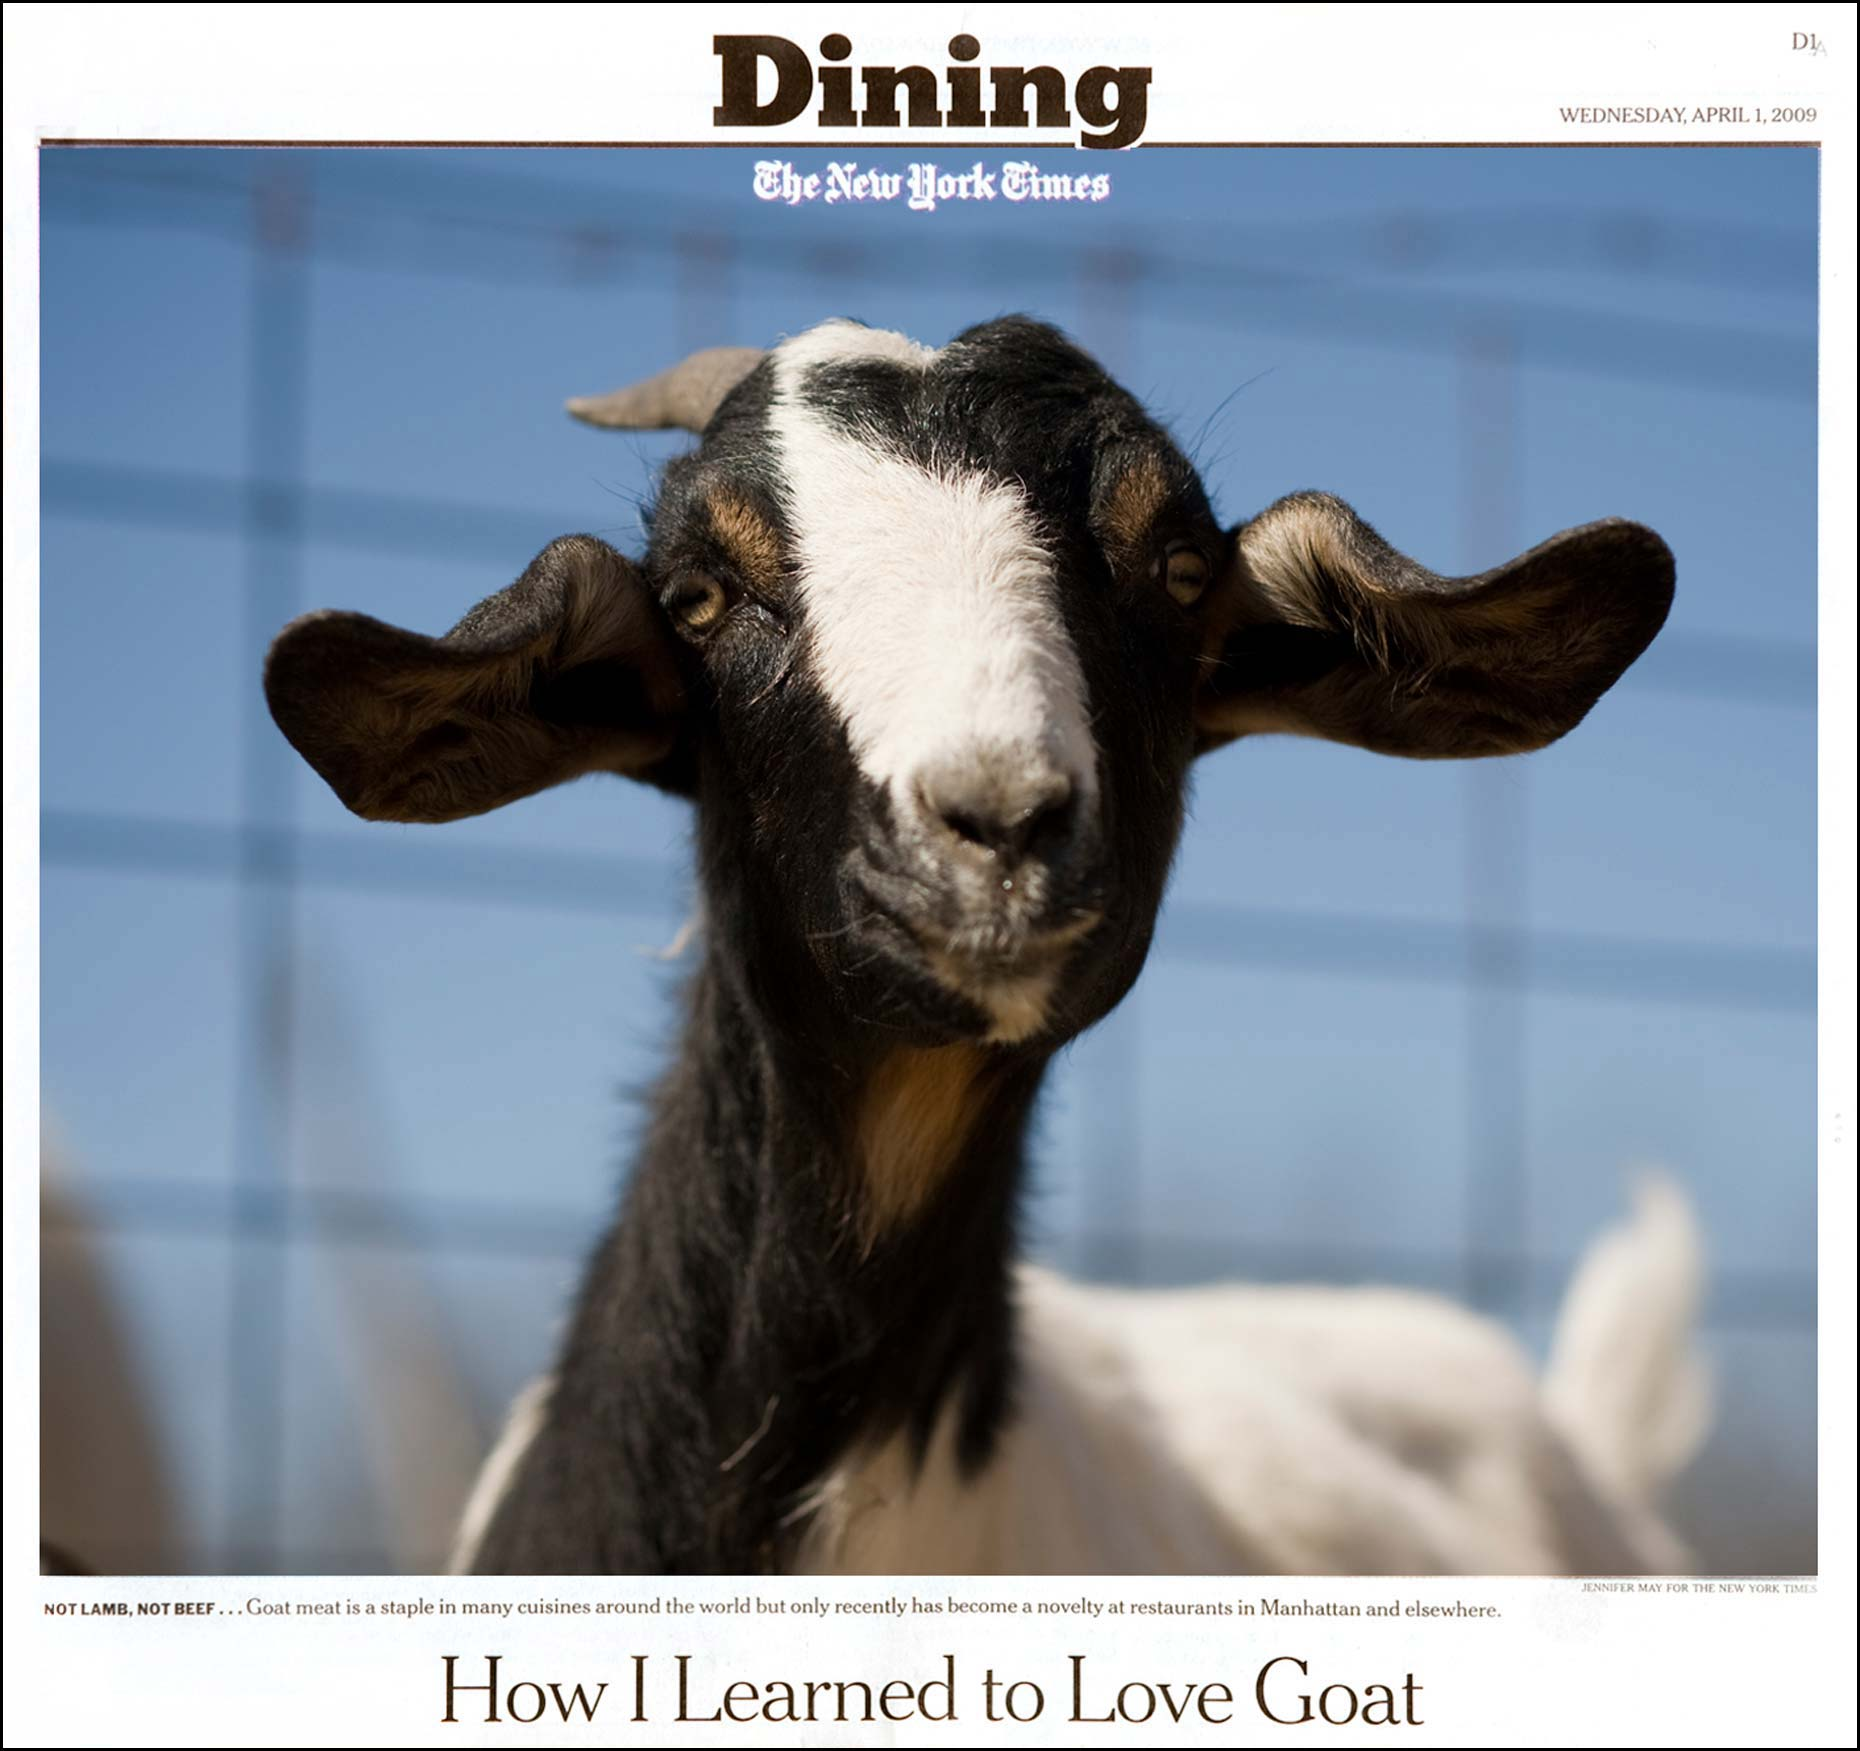 agriculture photography Tearsheet of Jennifer May's image of a goat for the New York Times